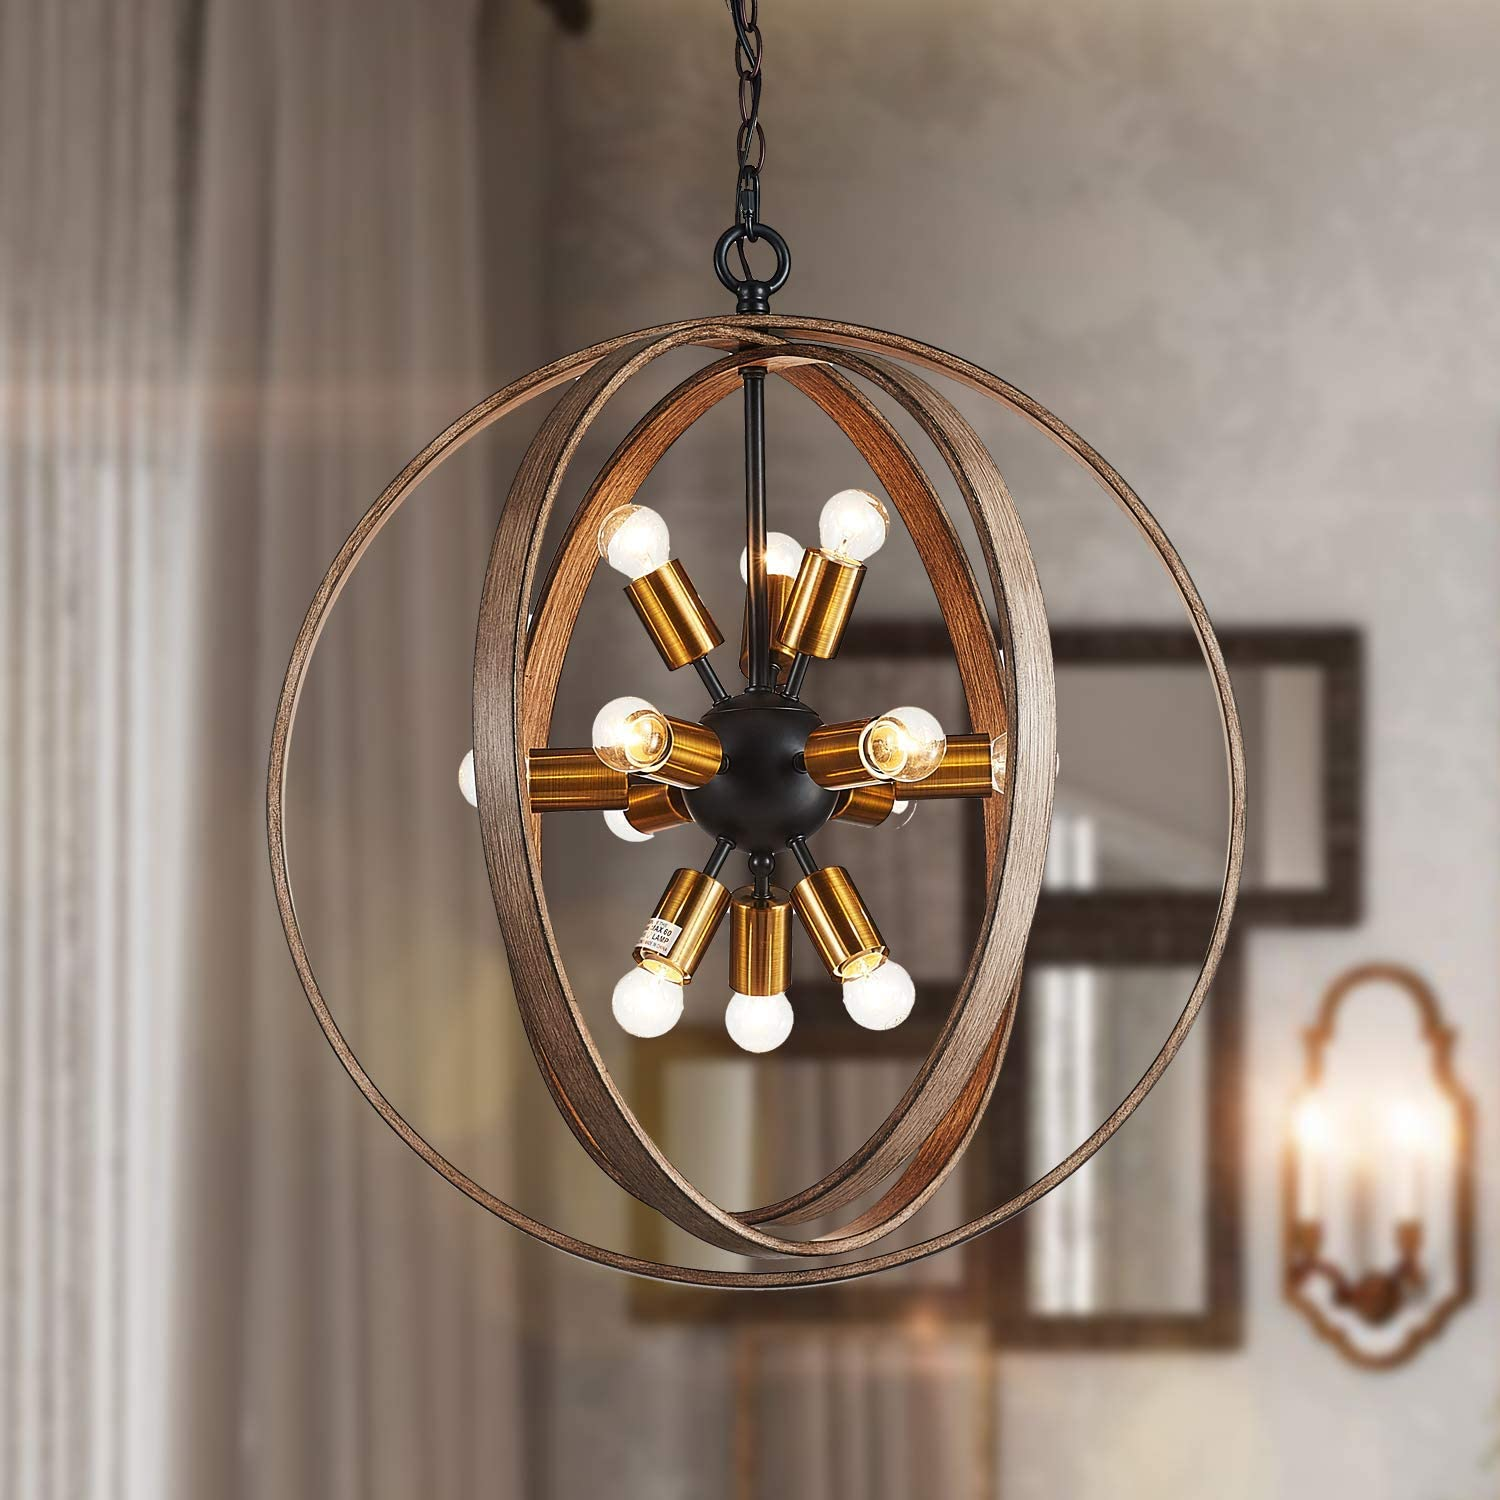 "Saint Mossi Oaky Wood Painted Metal and Warm Brass Finish Orb Chandelier 12 Lights 24"" inch Wide Chandelier Lighting"